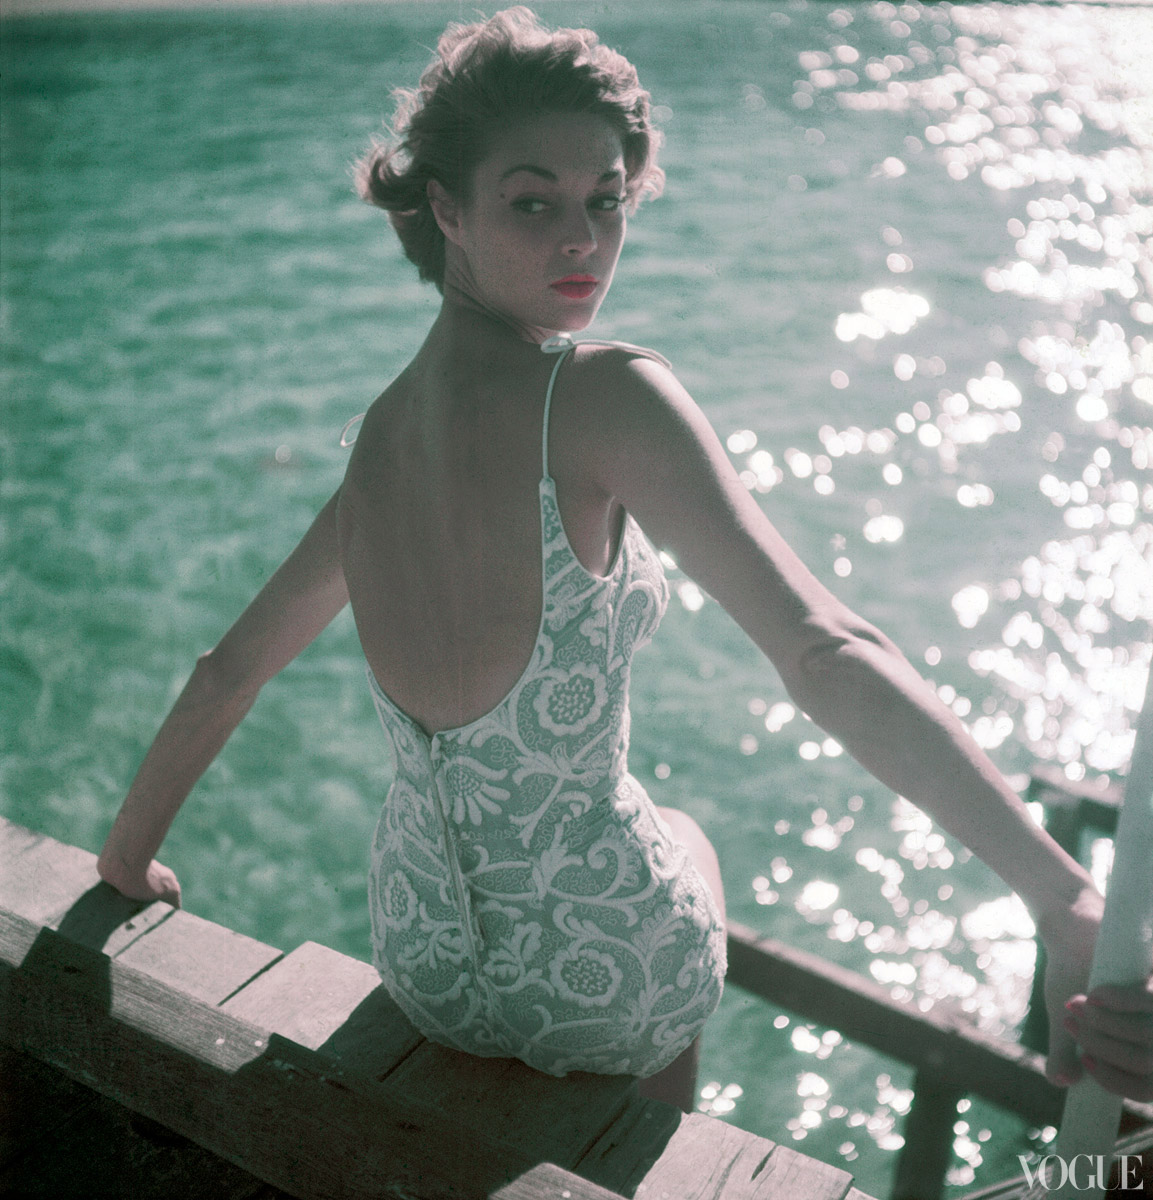 http://1.bp.blogspot.com/-TIRbvZGFMHc/UAChL_miDxI/AAAAAAAANbU/aAQcVVEnezc/s1600/bathing-suits-in-vogue-1950-11-15-coffin_114244802345.jpg